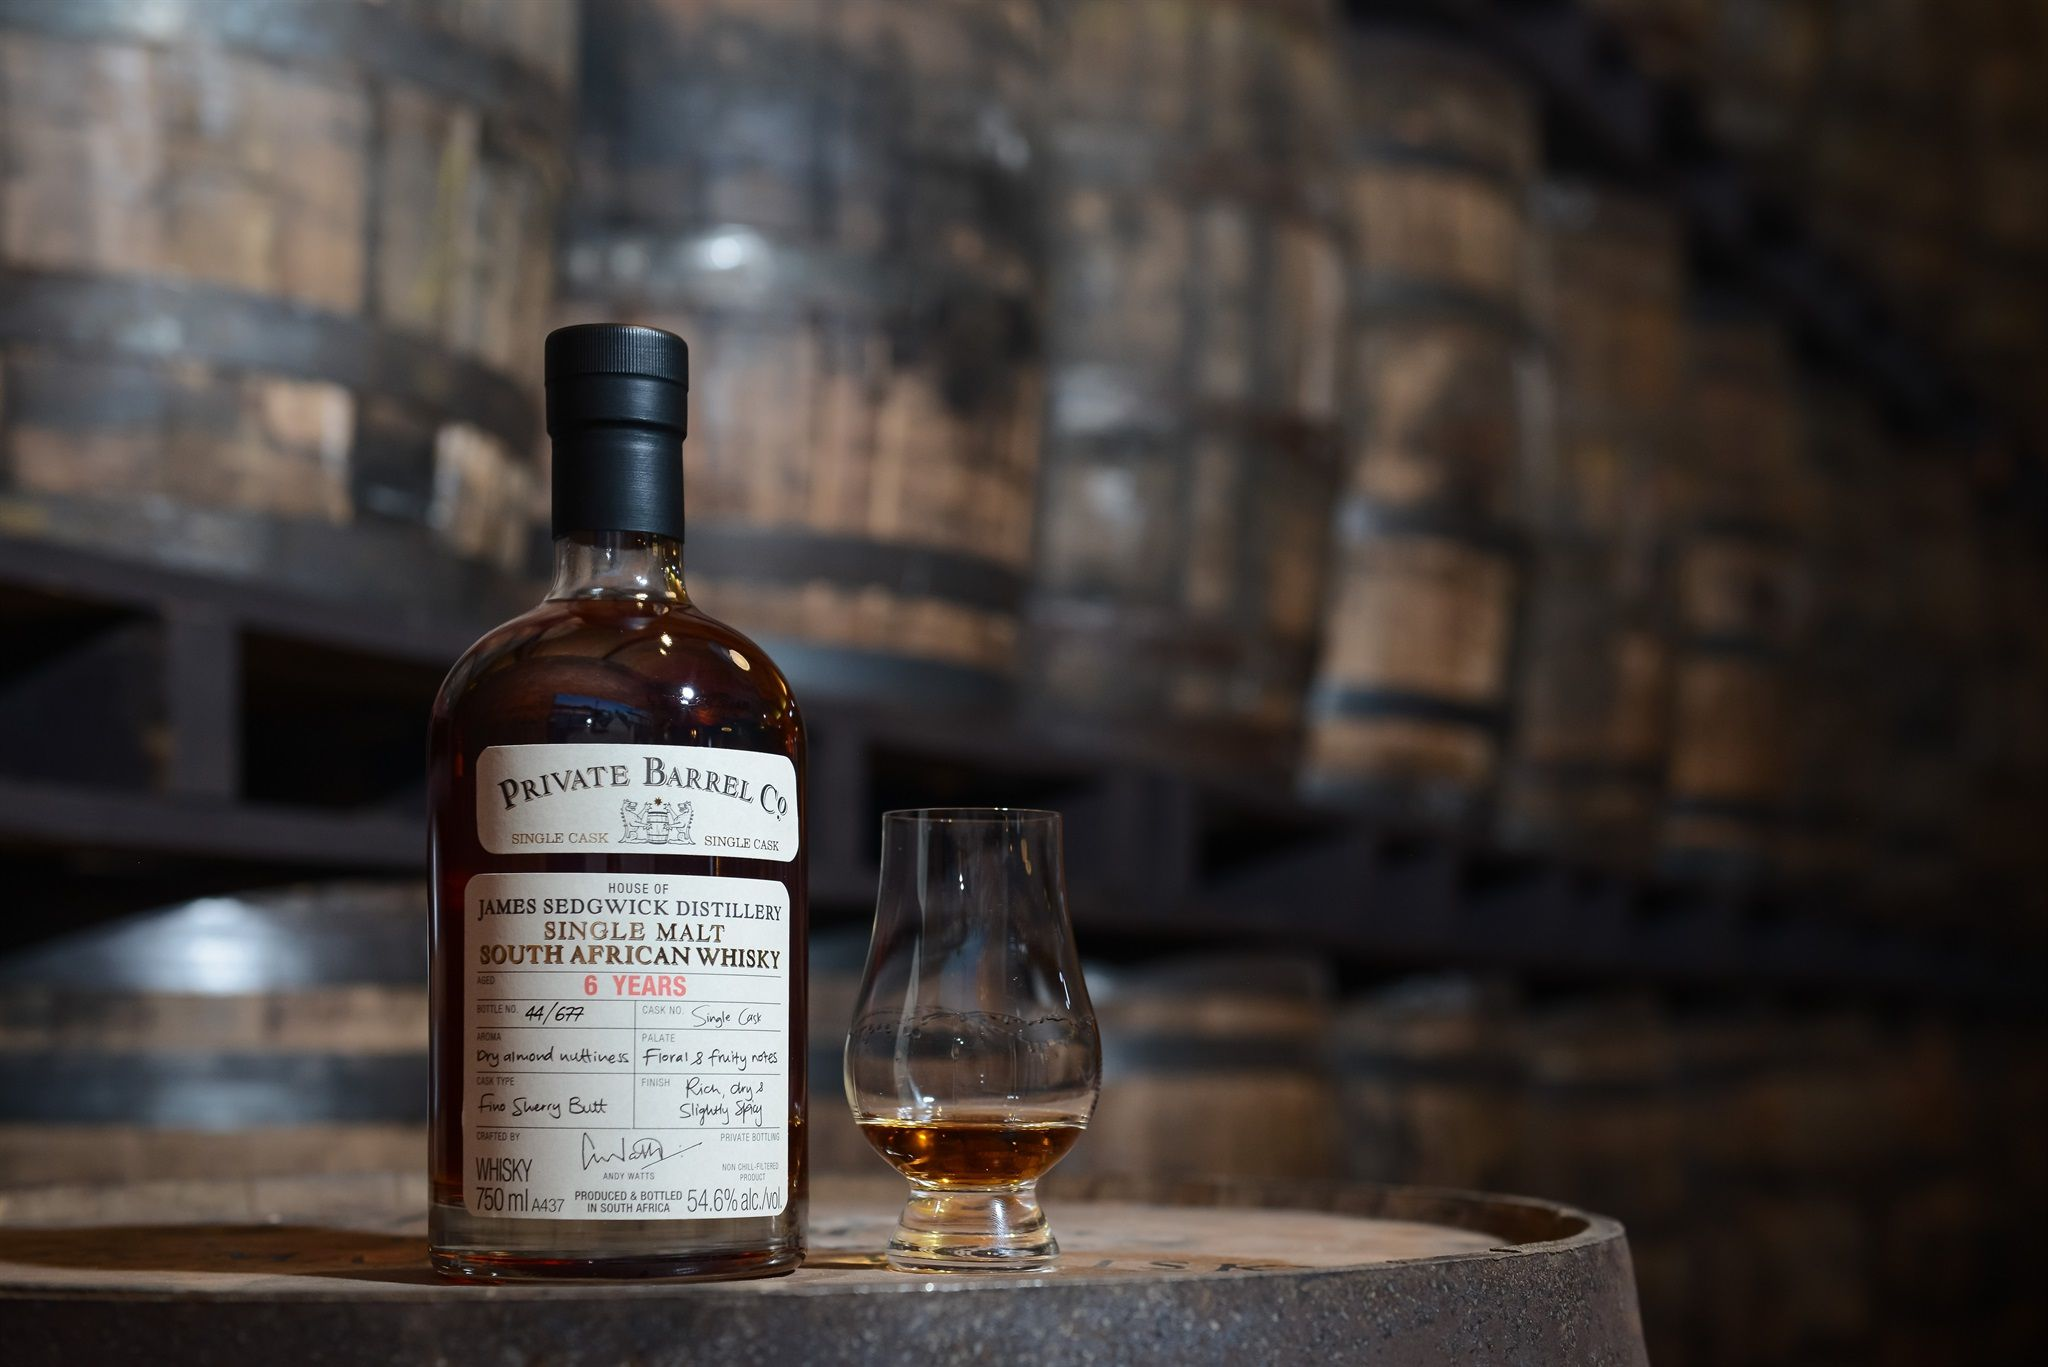 First Limited Edition Sa Whisky Added To Checkers Exclusive Private Barrel Co. Range photo